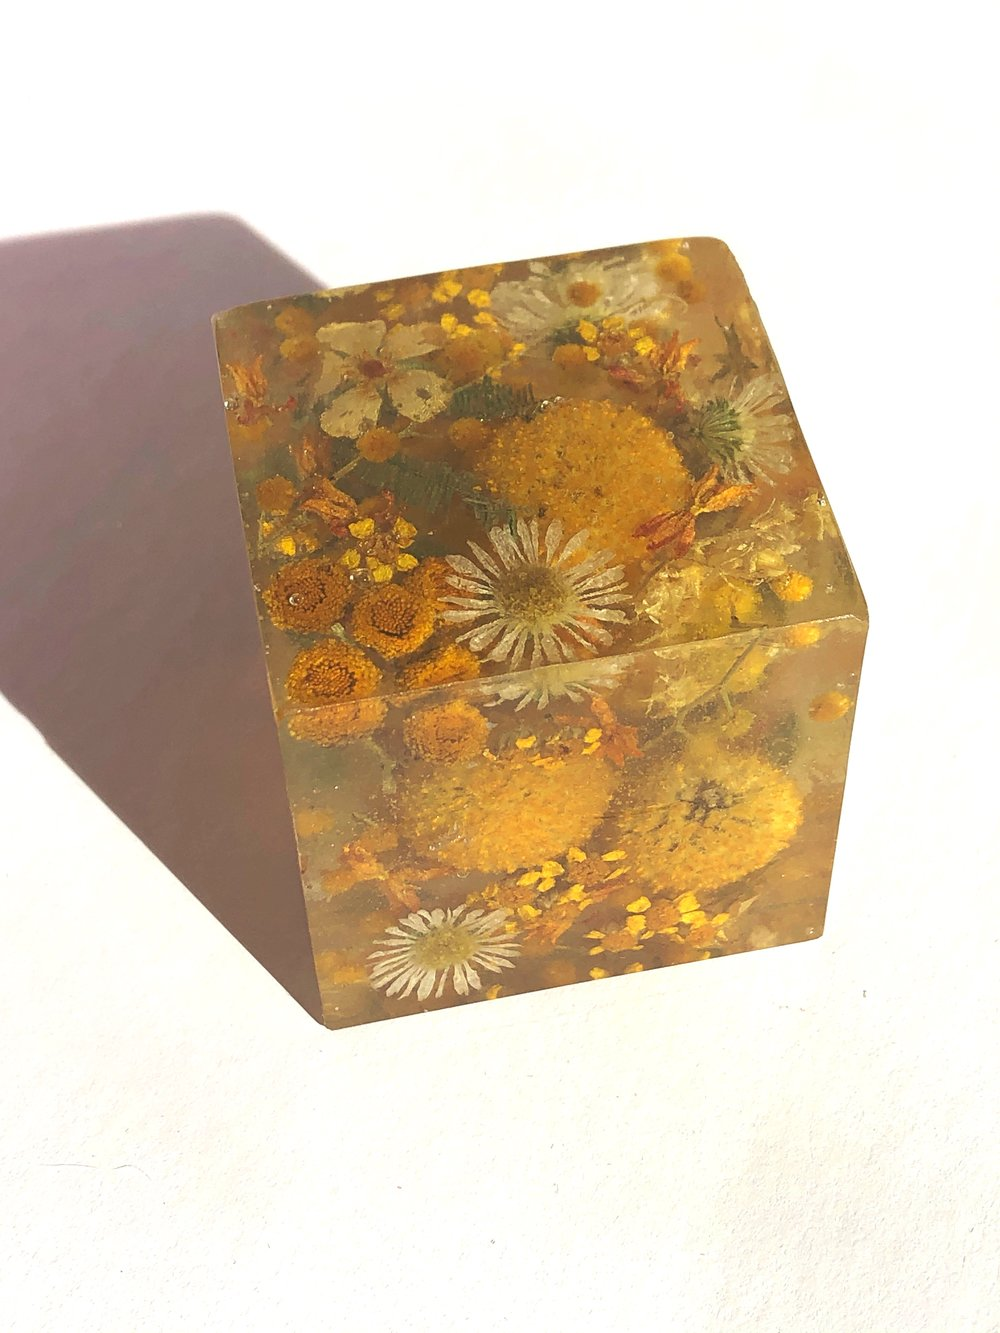 All yellow flower cube